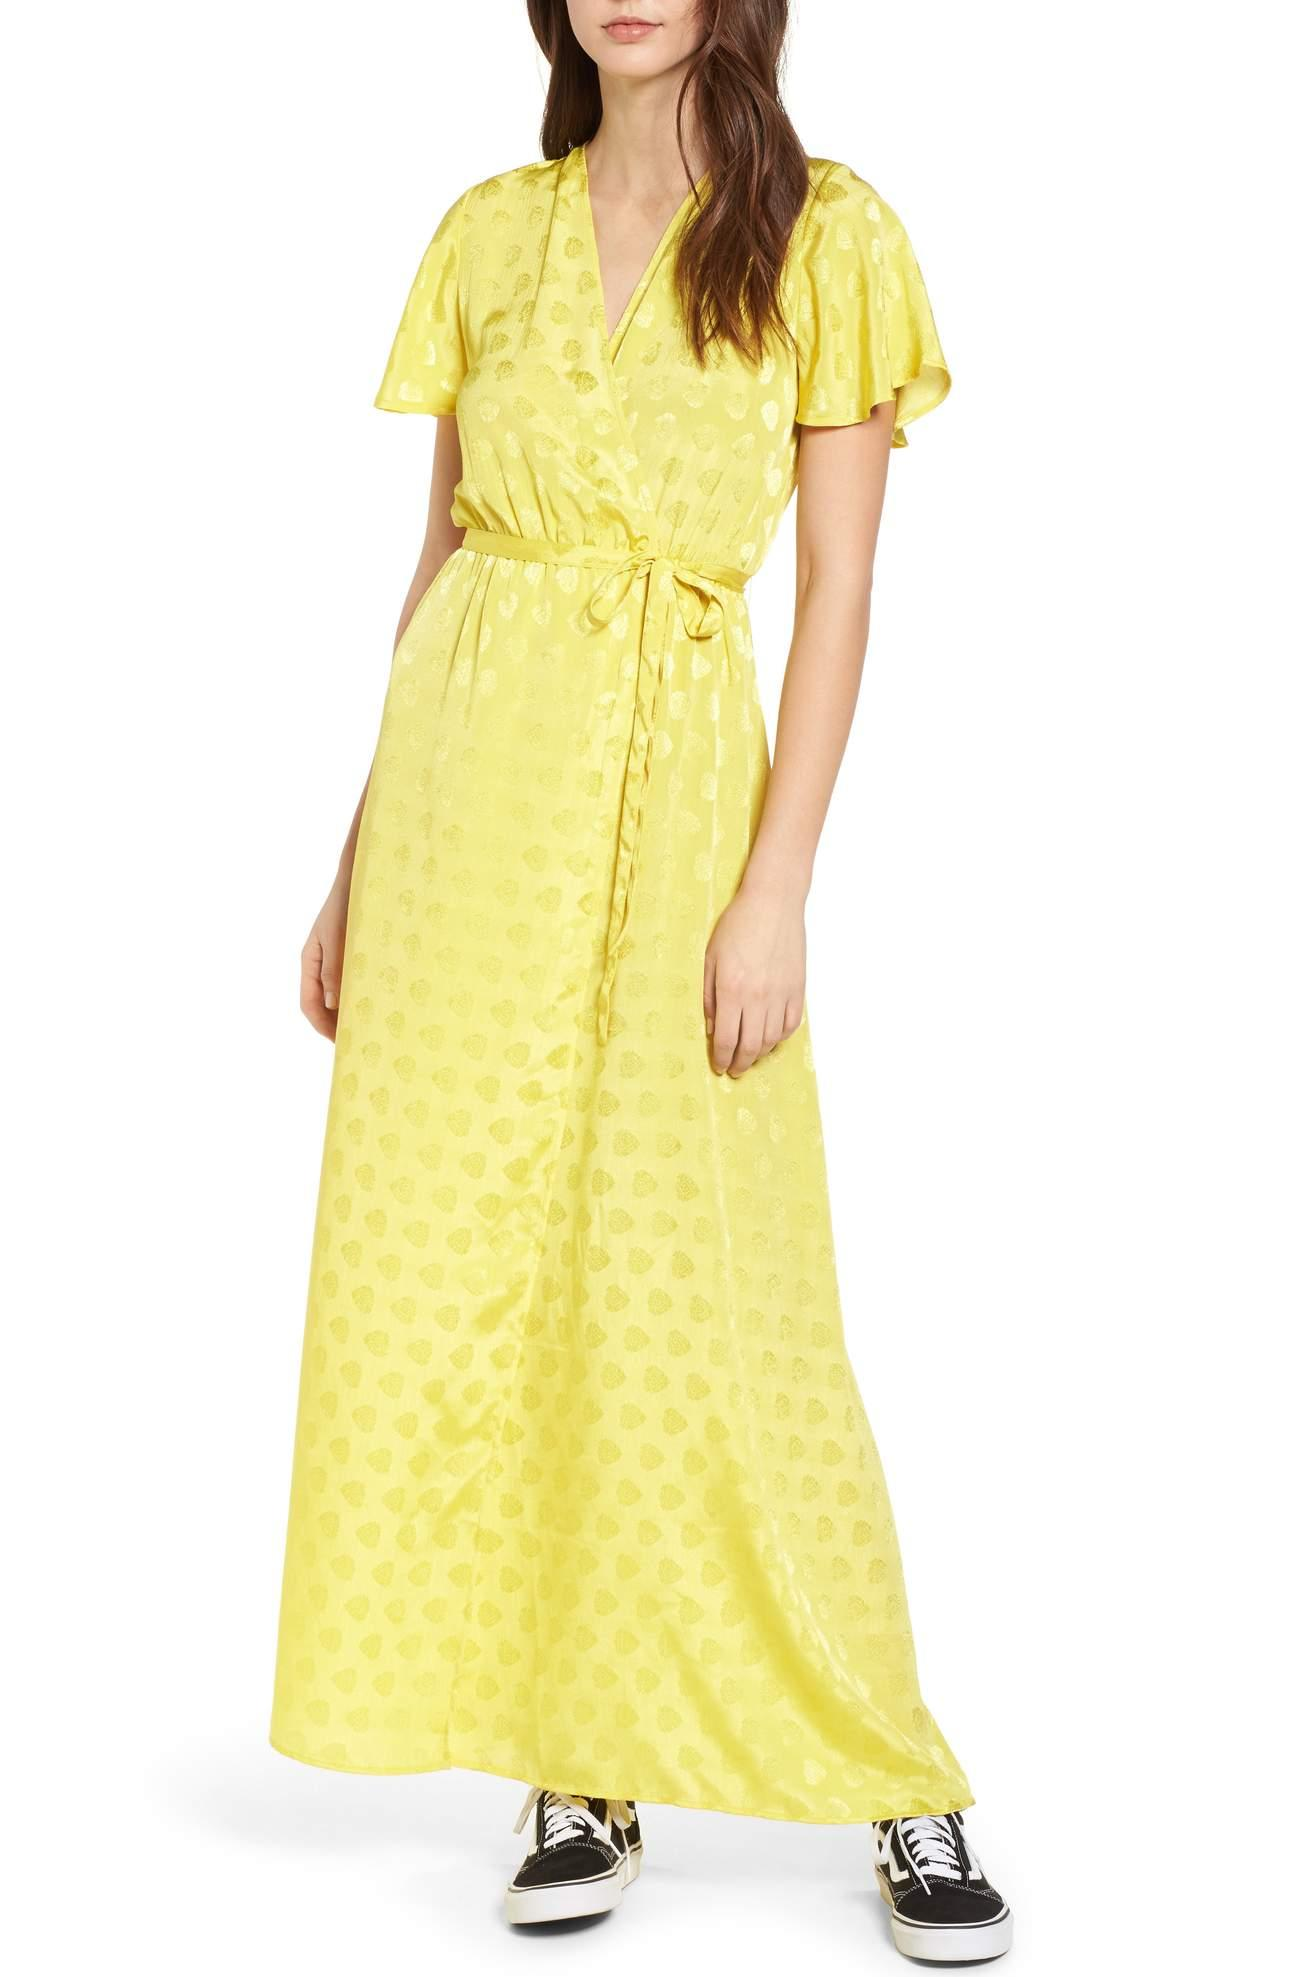 <p>This yellow EZ Days Satin Wrap Maxi Dress/STONE ROW just screams Spring! Sewn from emerald-hued satin, this lustrous maxi dress is styled with fluttering sleeves and a wrapped silhouette that creates an elegant, flattering shape. $98.00 at Nordstrom. (Image: Nordstrom){&amp;nbsp;}</p><p></p>